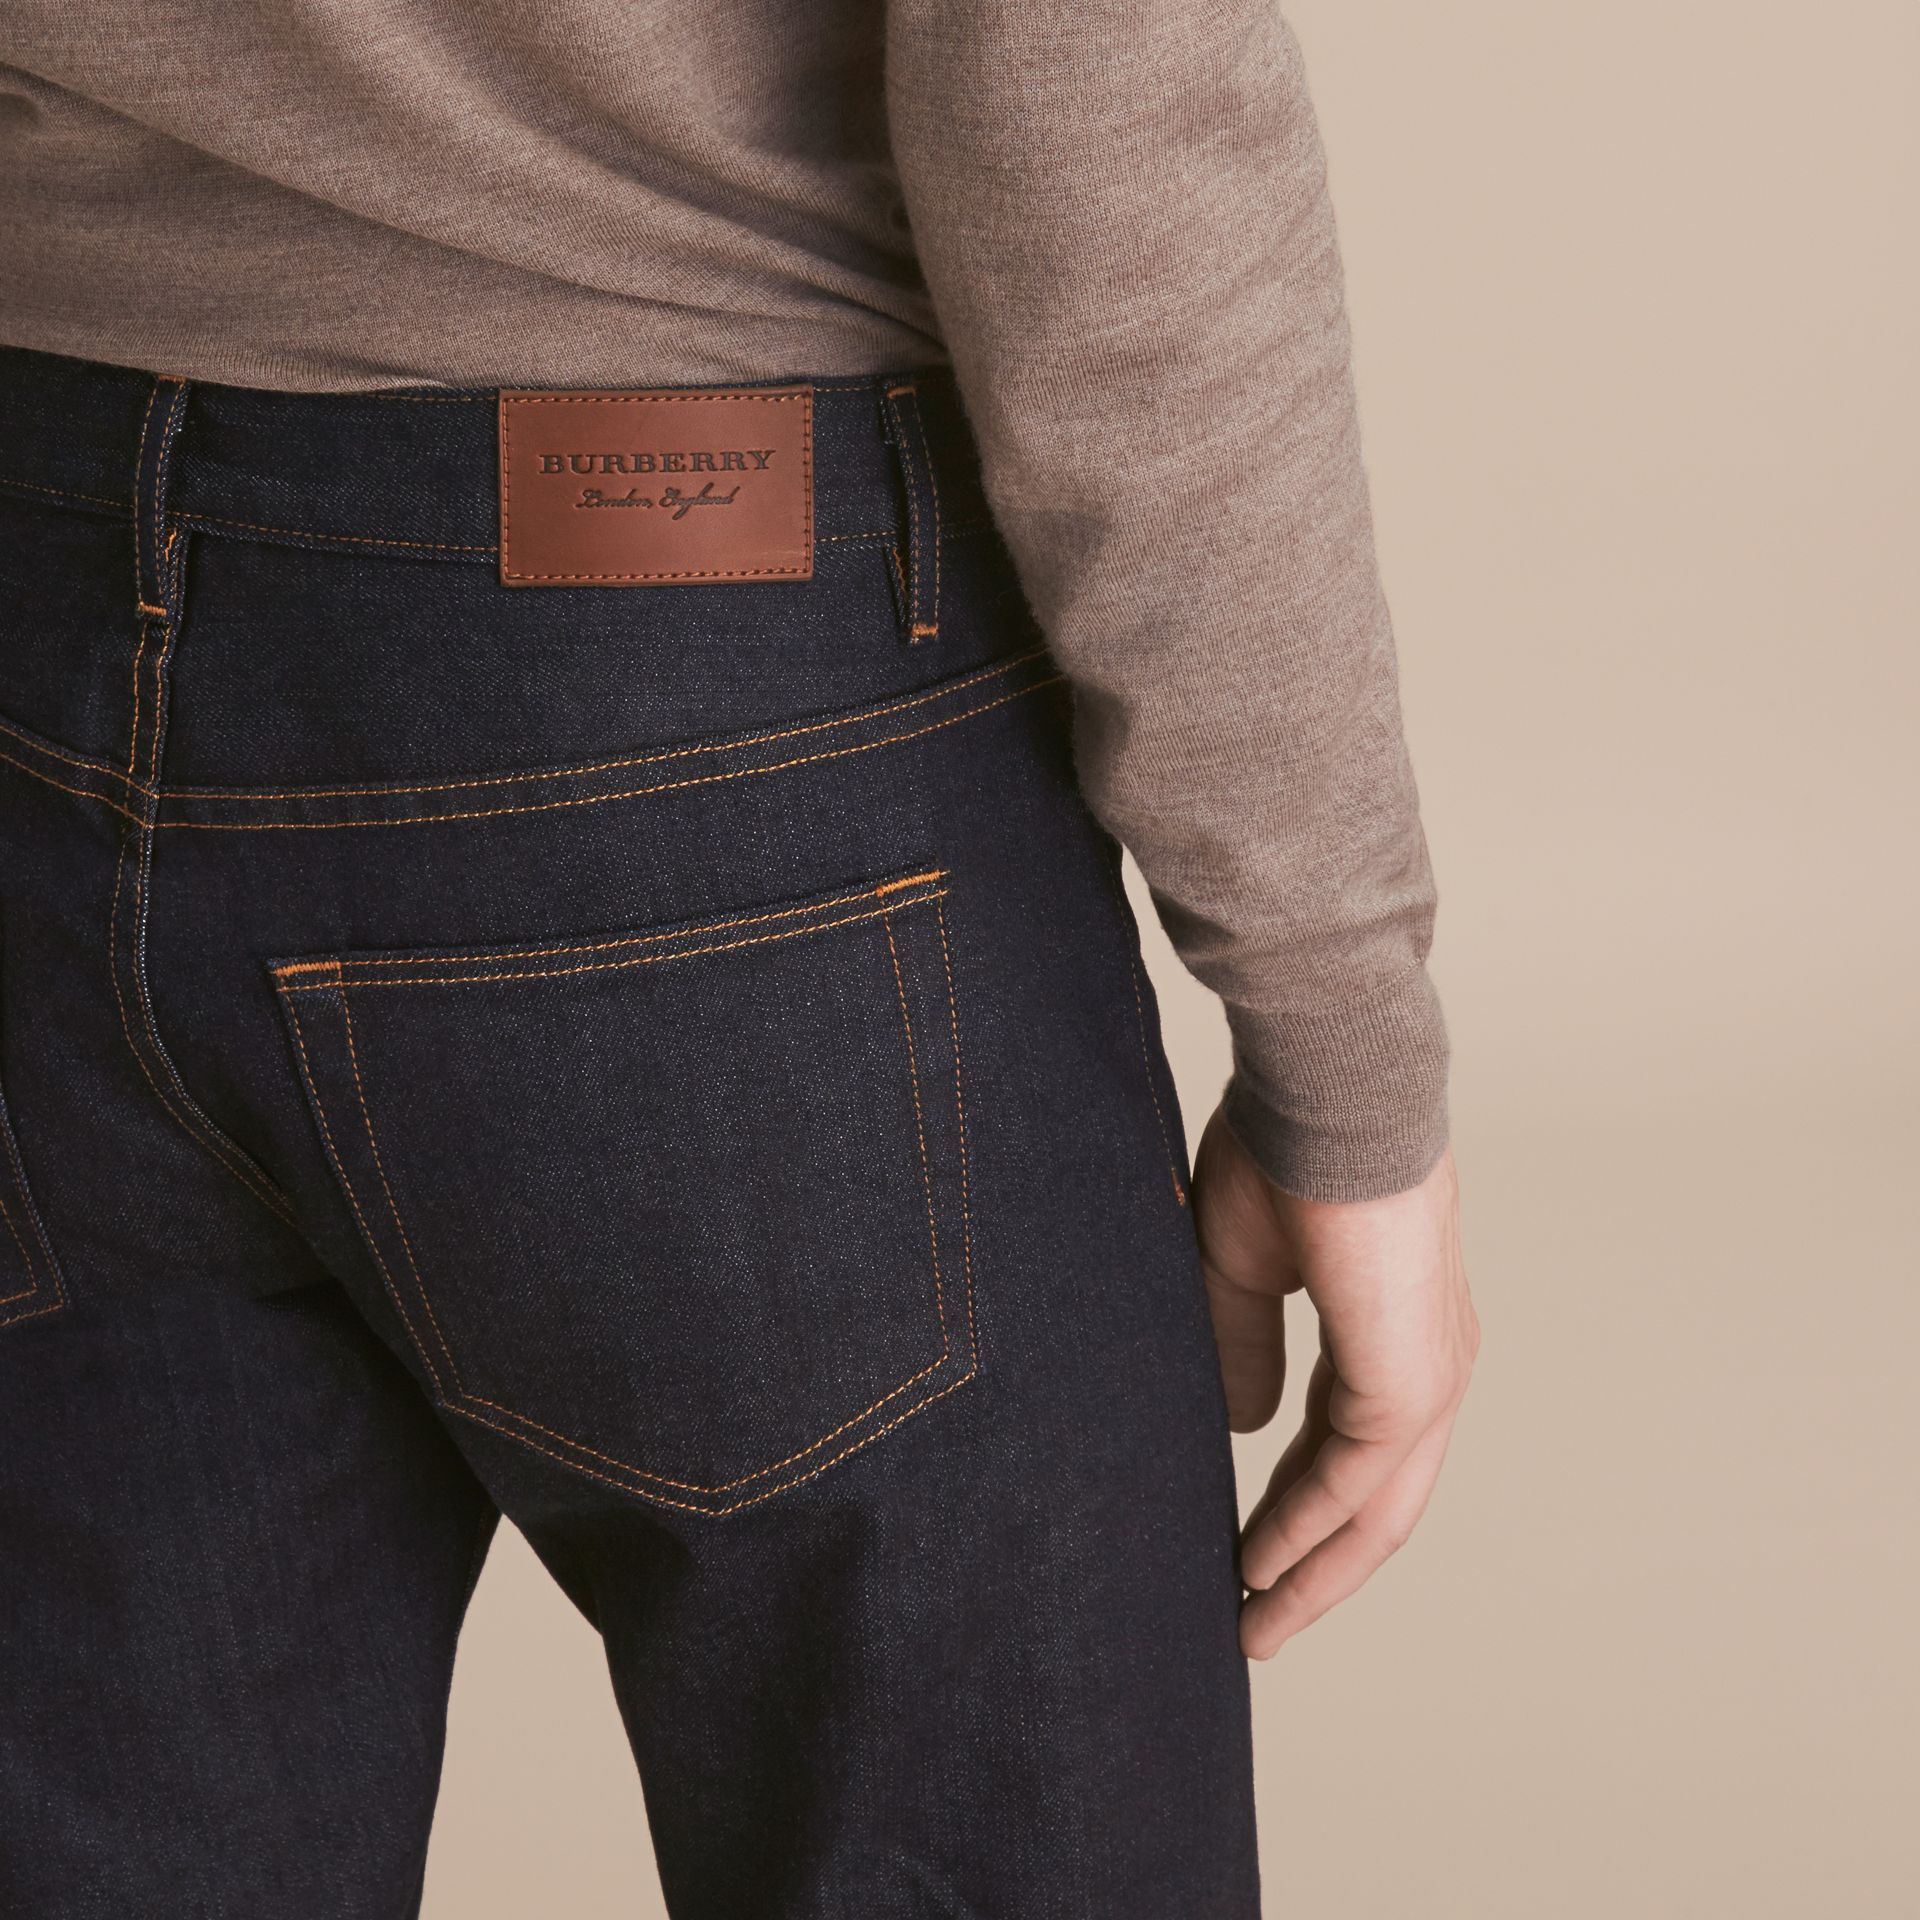 Relaxed Fit Comfort Stretch Indigo Japanese Denim Jeans in Dark - Men | Burberry - gallery image 5